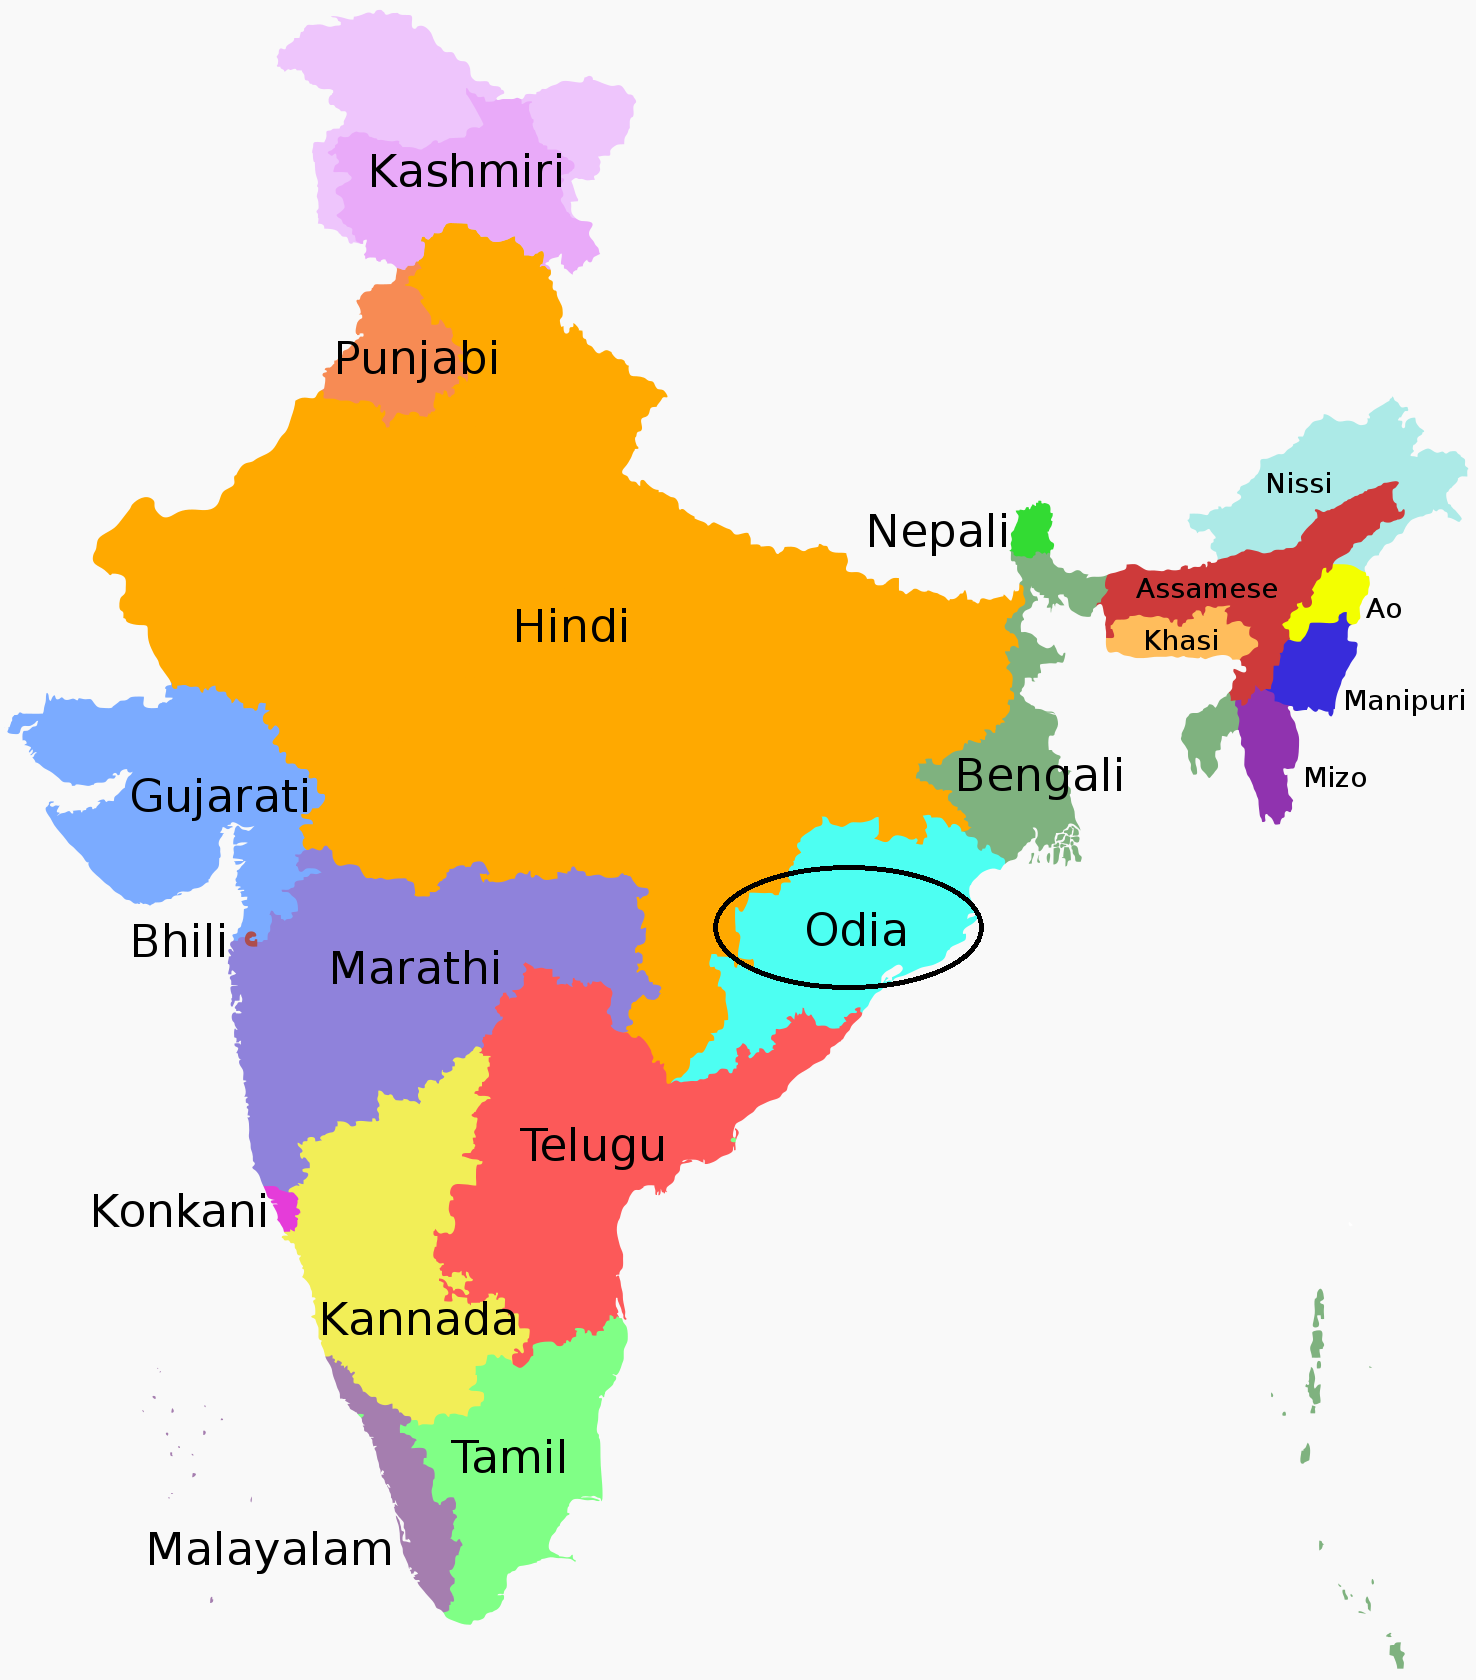 oriya language distribution in India